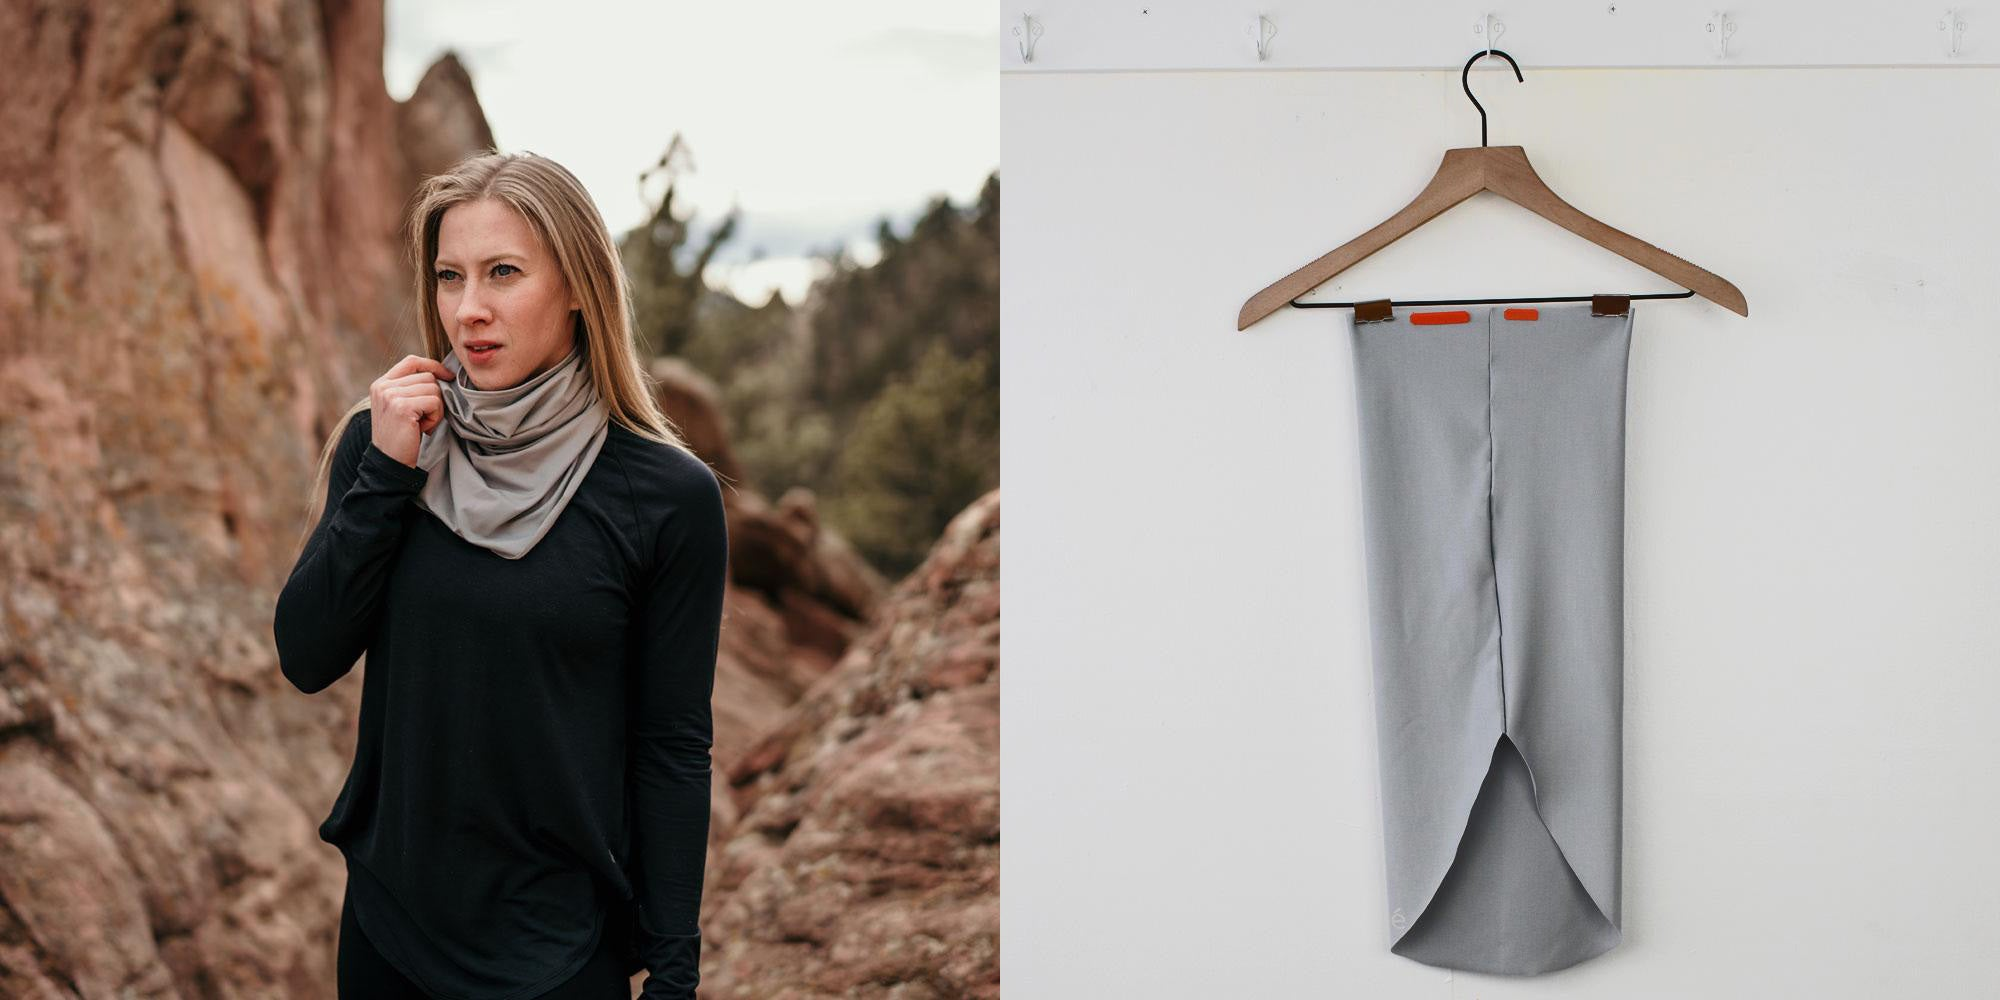 Left: Woman in nature with scarf. Right: Eclipse glove scarf